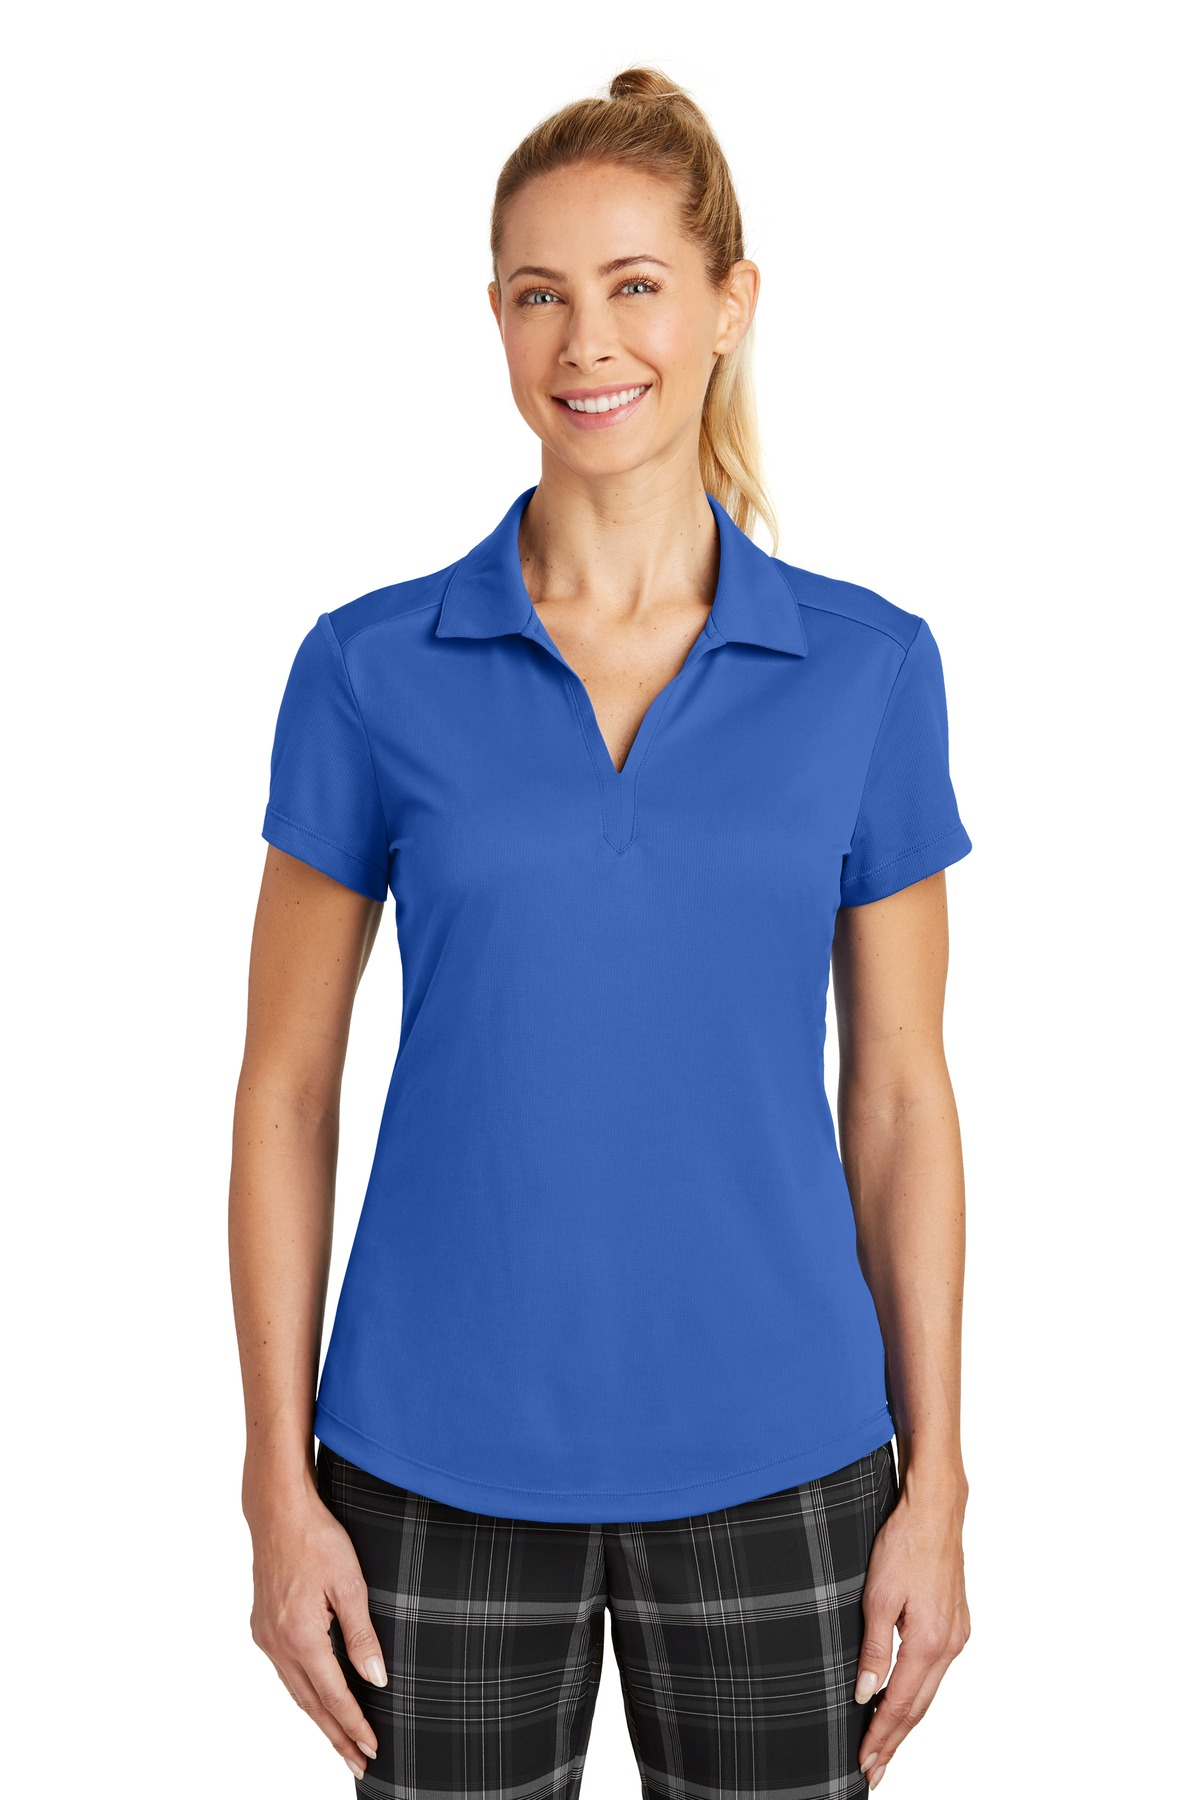 Nike Golf Ladies Dri-FIT Legacy Polo.-Nike